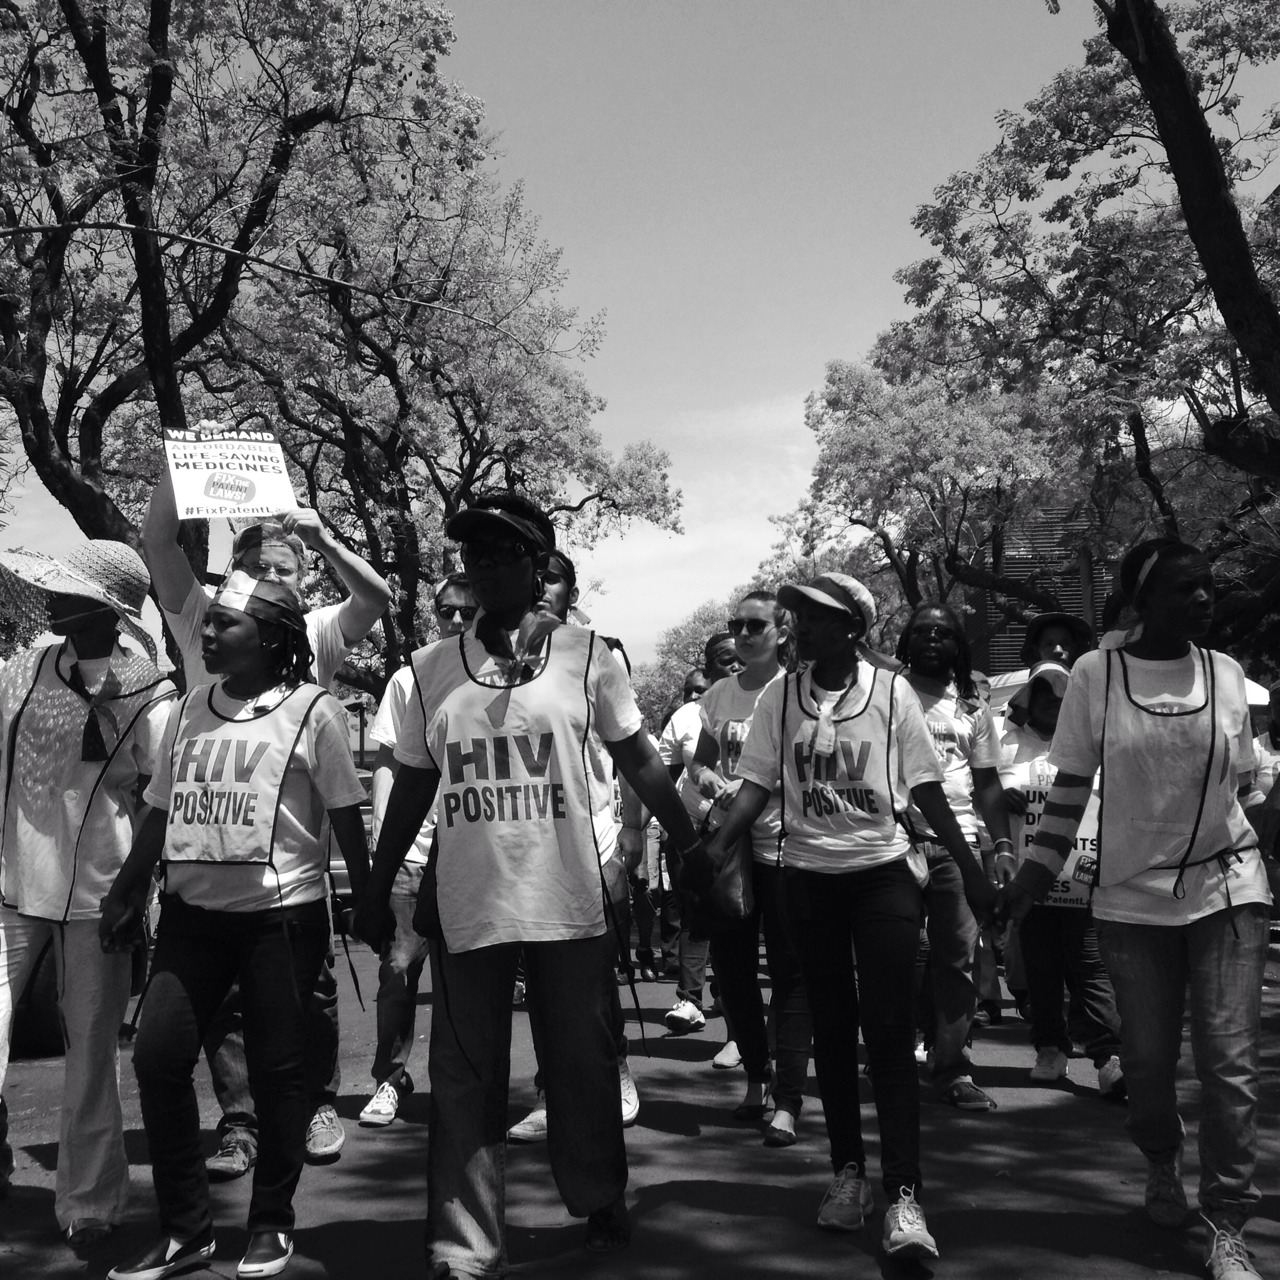 2/3: [ @DoctorsWithoutBorders ]  As the period available for the public to comment on the Draft National Policy on Intellectual Property draws to a close, roughly 300 activists and members of the public, march on the Department of Trade and Industry's Pretoria offices, in protest of secondary prescription drug patents and the high cost of medicine in South Africa. Some are blindfolded with the South African flag, to illustrate how the government is 'blindly' handing out patents without acknowledgement to the lack of research and funding into fighting diseases such as TB, that are particularly prevalent in South Africa. Follow @DoctorsWithoutBorders and help #FixPatentLaw #DoctorsWithoutBorders